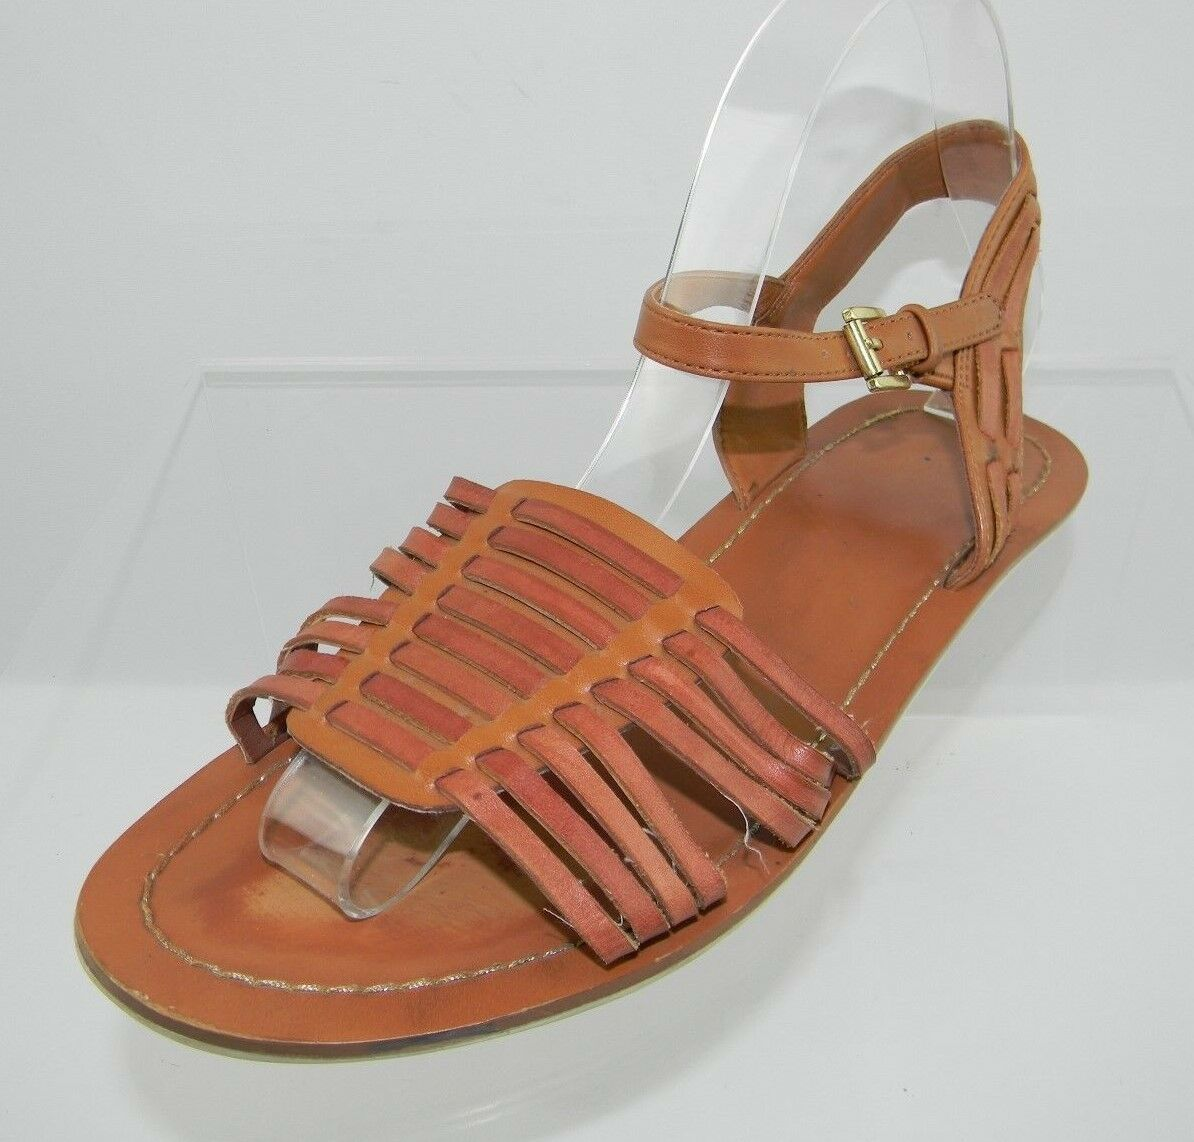 DV Flat by Dolce Vita Brown Flat DV Sandals Women's Shoes Size 9 M e089a3